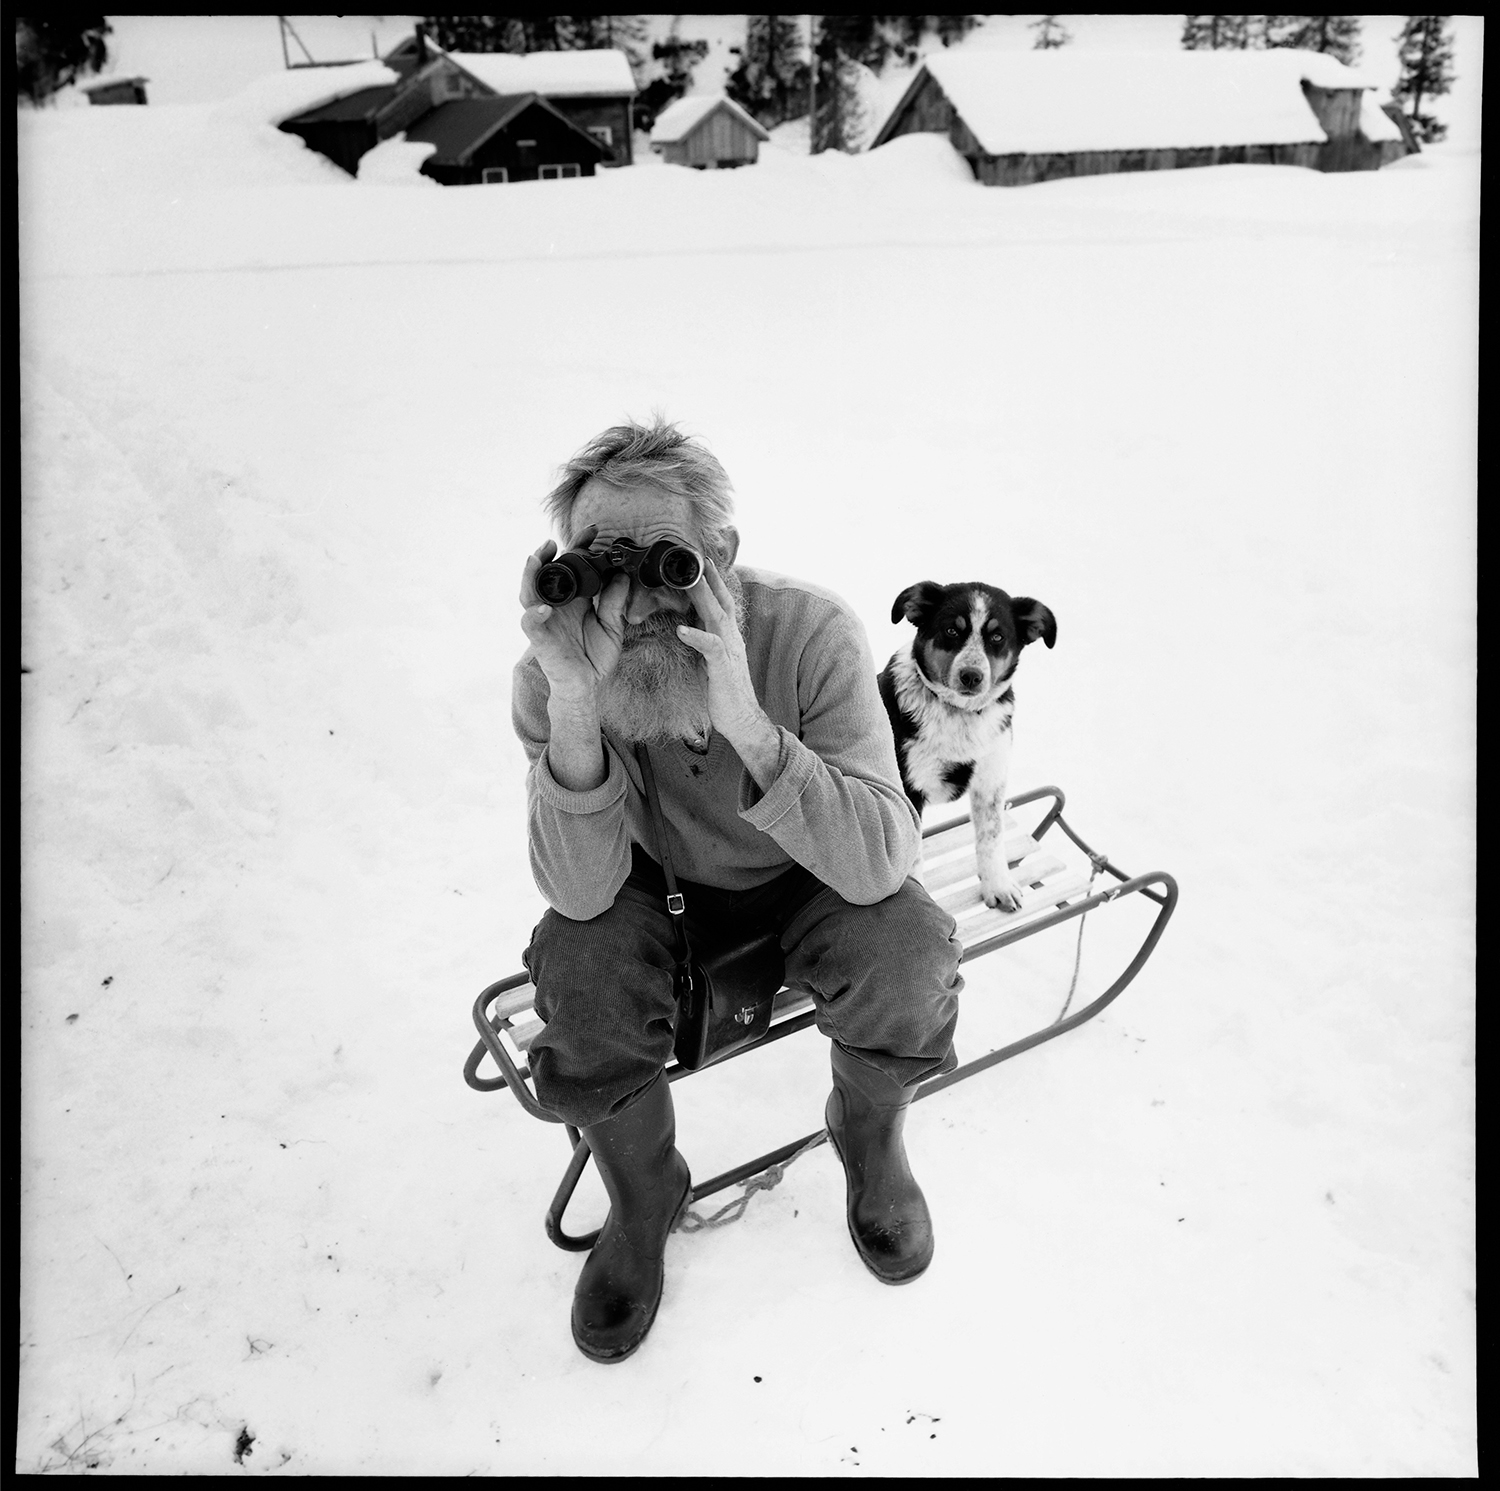 Bergbauer Herger Toni und sein Hund, Urnerboden, 1996   Romano Riedo  Archival inkjet print 8 x 11.5, signed and numbered edition of 5 $150  Only 1 print remaining!